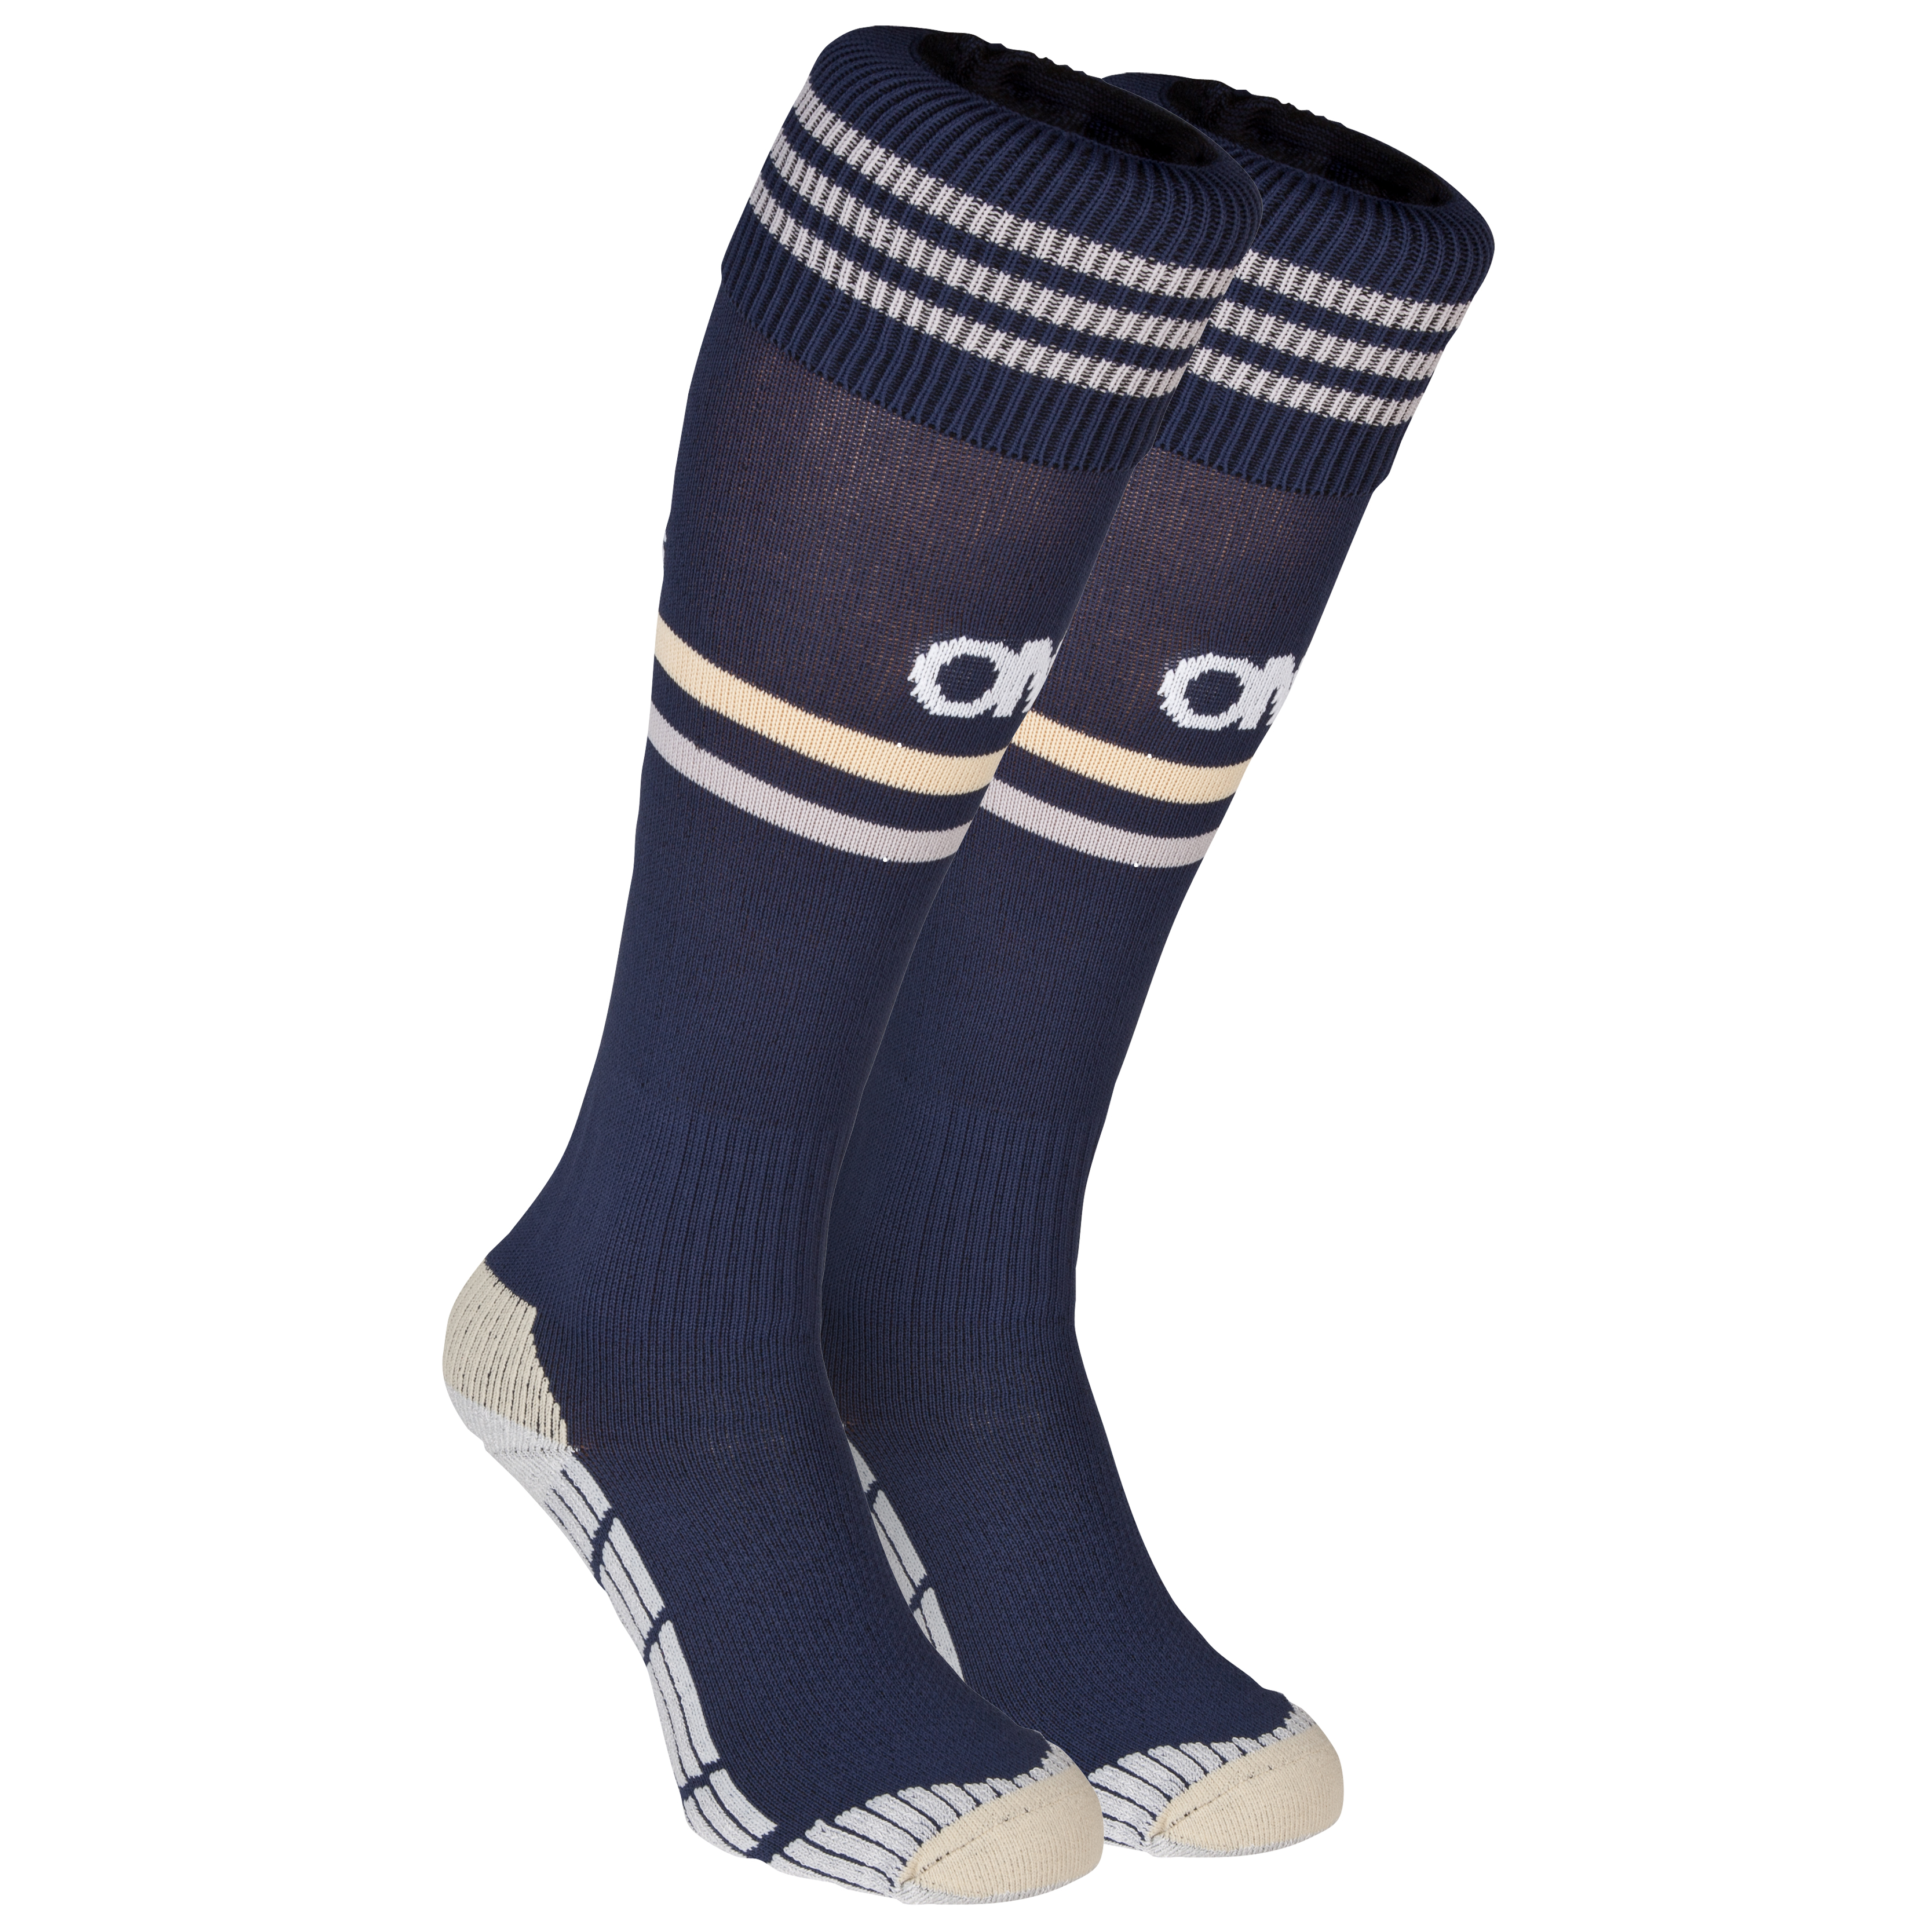 Olympique de Marseille Away Sock 2013/14 - Mens Lt Blue